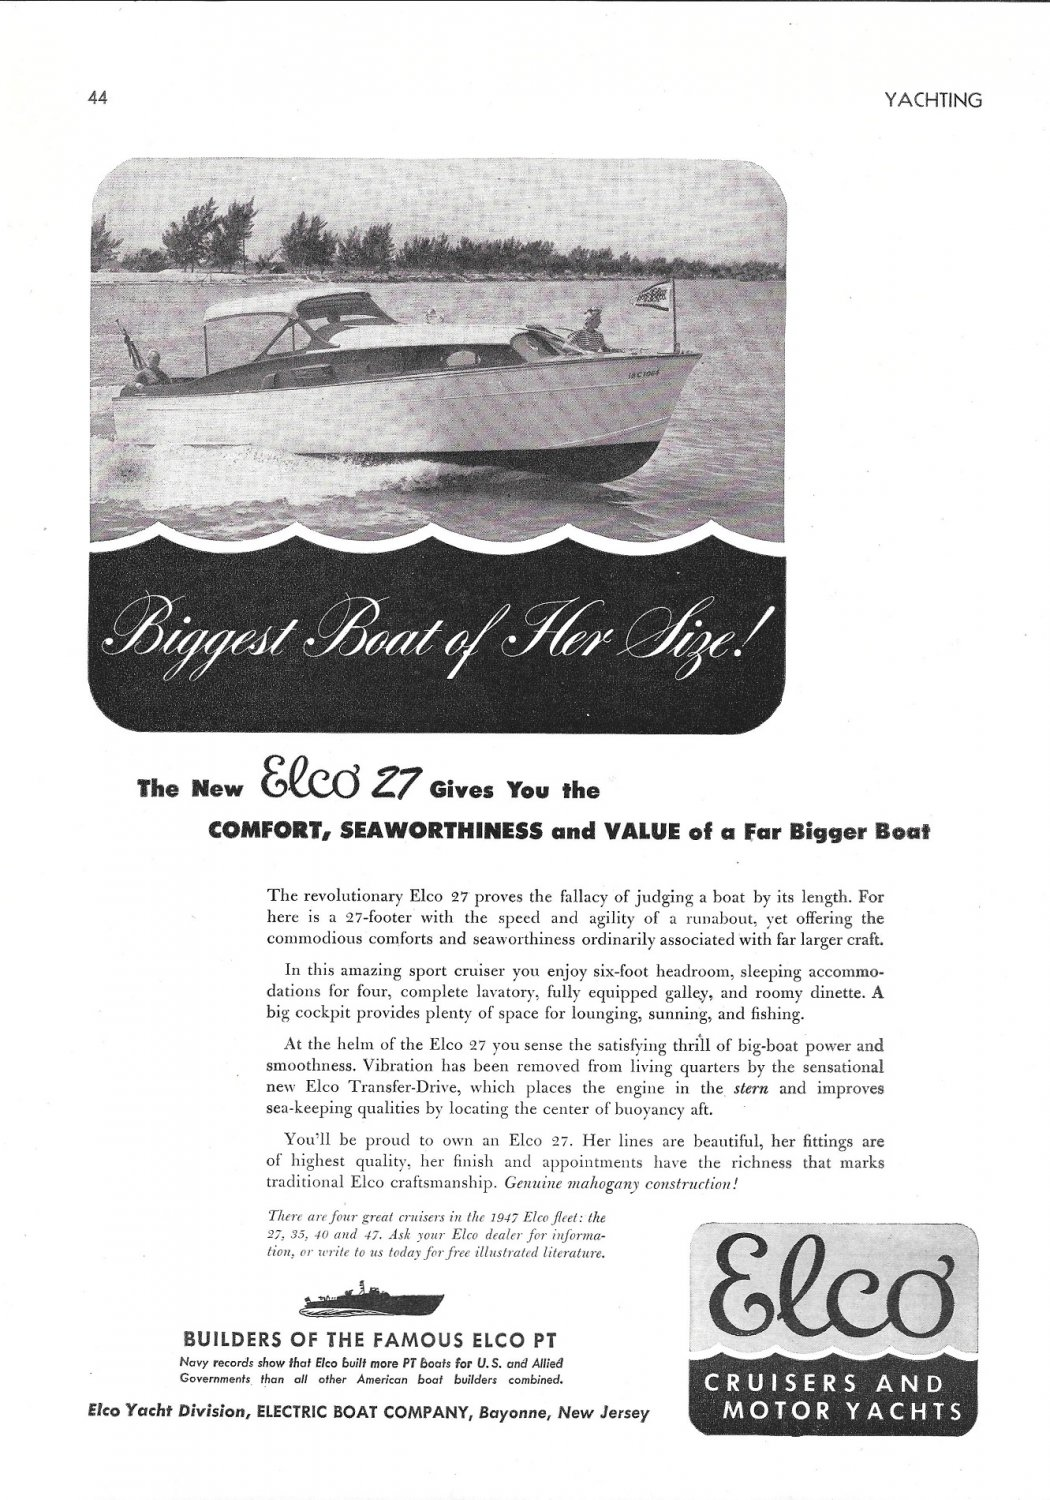 1947 Electric Boat Company Ad- The Elco 27